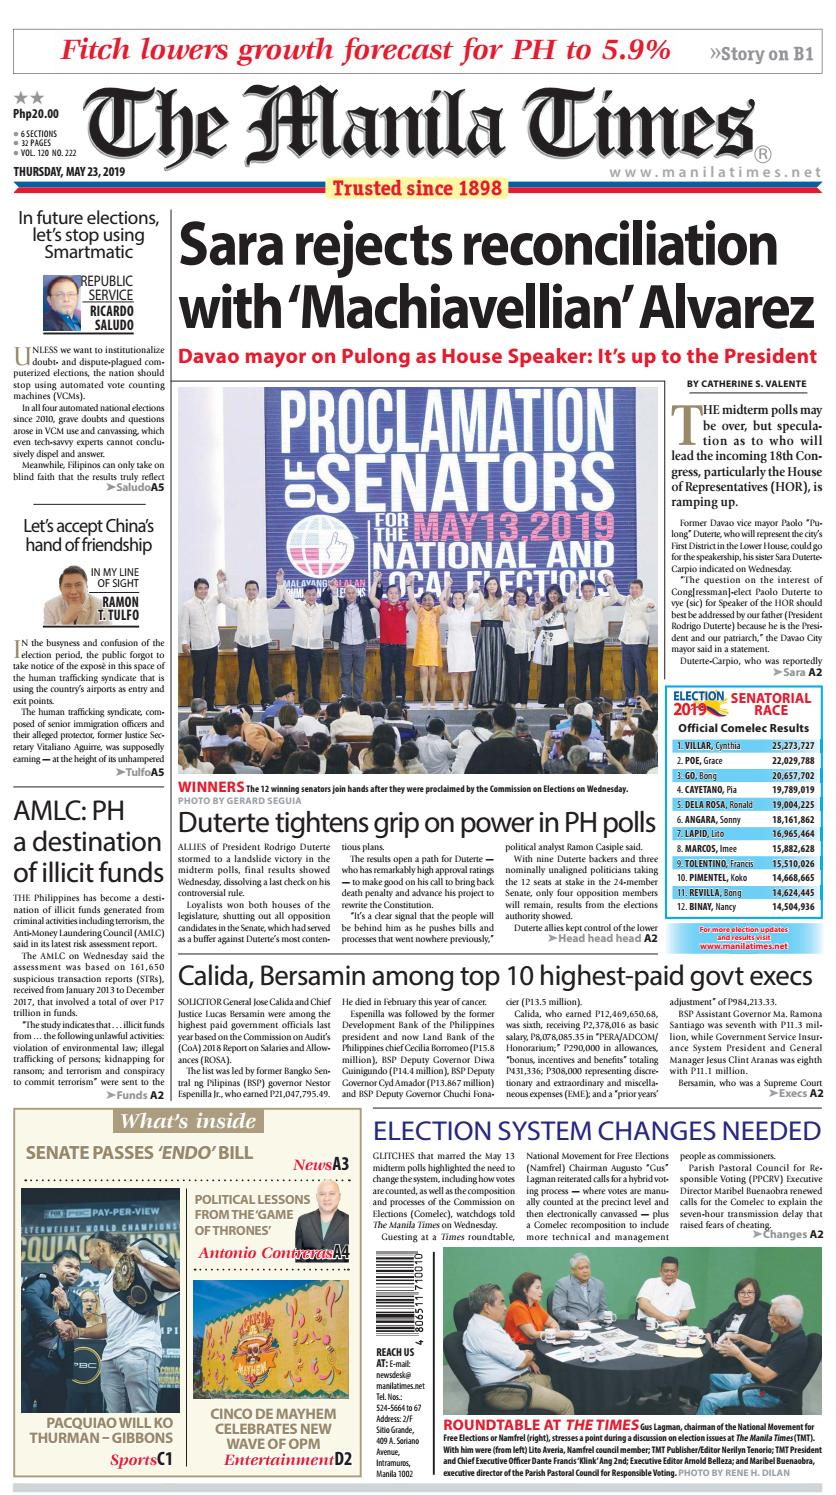 THE MANILA TIMES | MAY 23, 2019 by The Manila Times - issuu